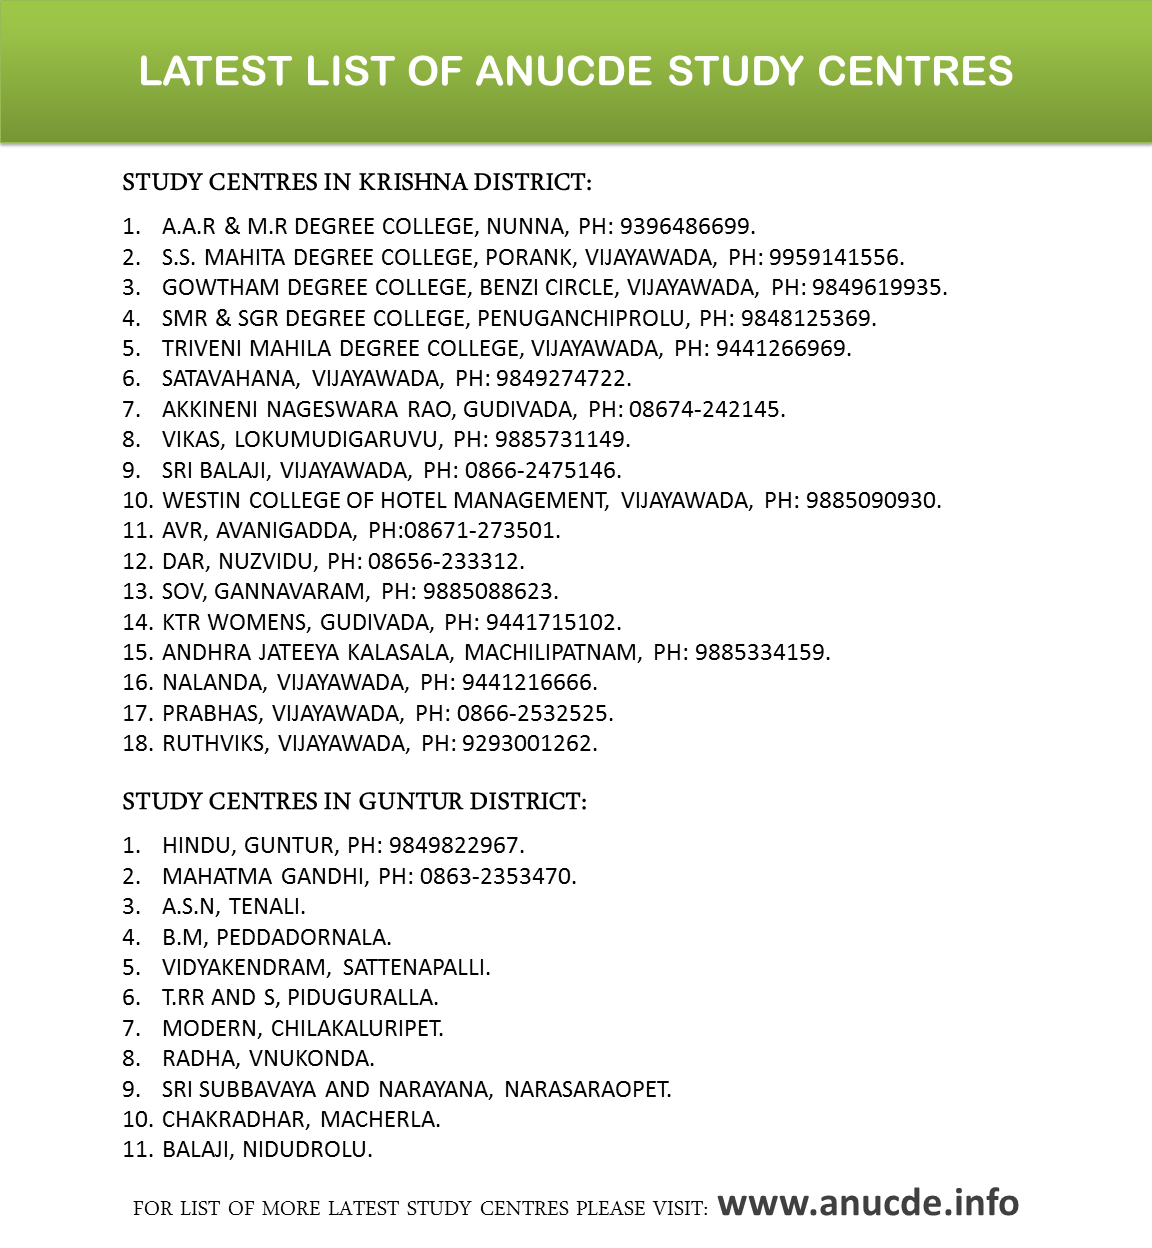 LATEST LIST OF ANUCDE STUDY CENTRES